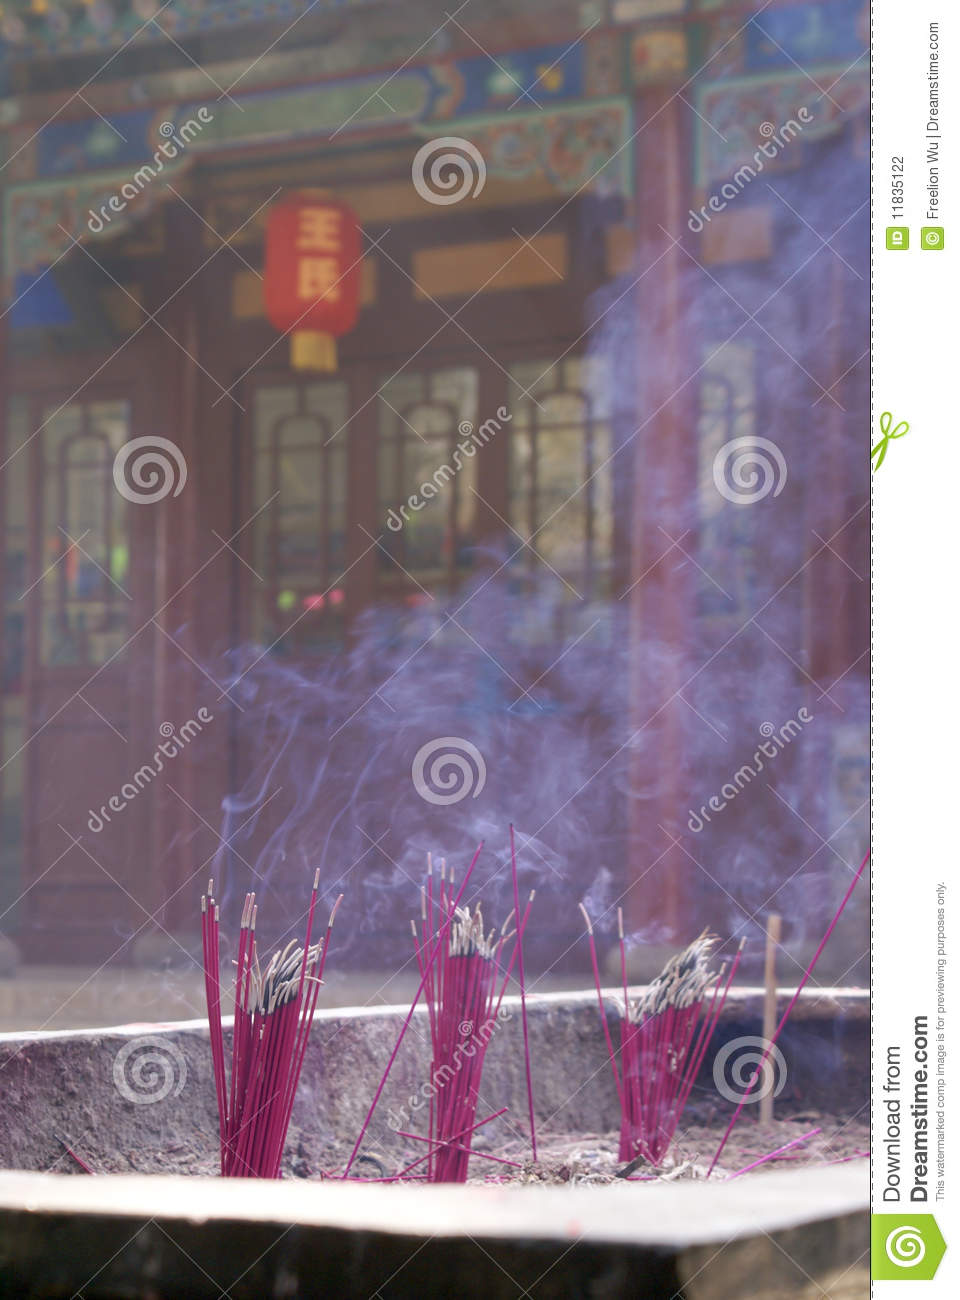 Burning incense sticks at a temple